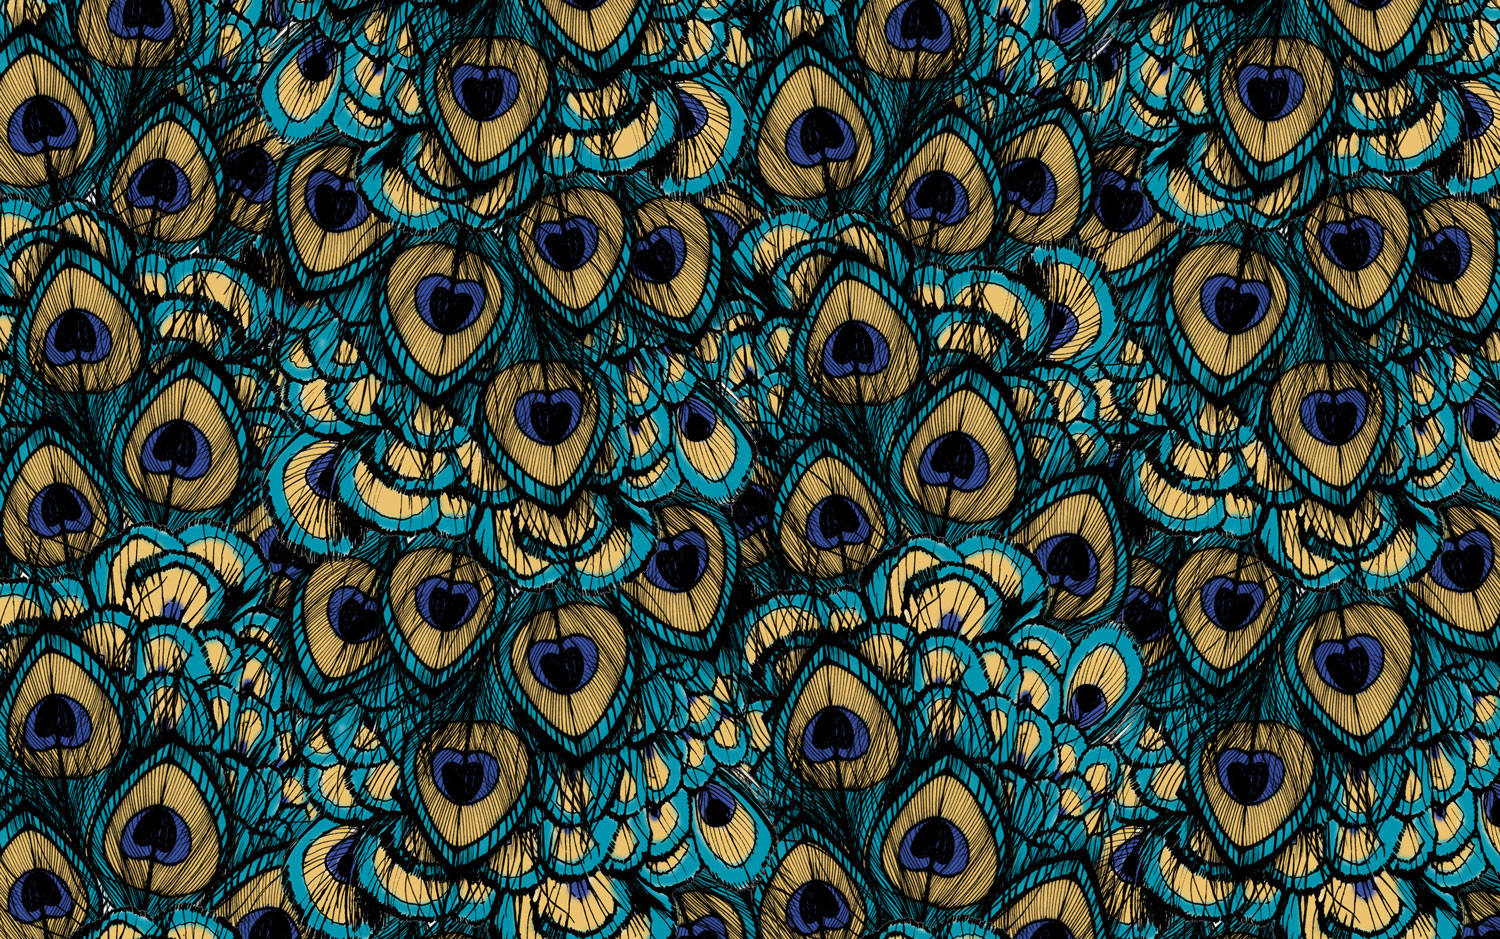 peacock-feather-print-pattern.jpg